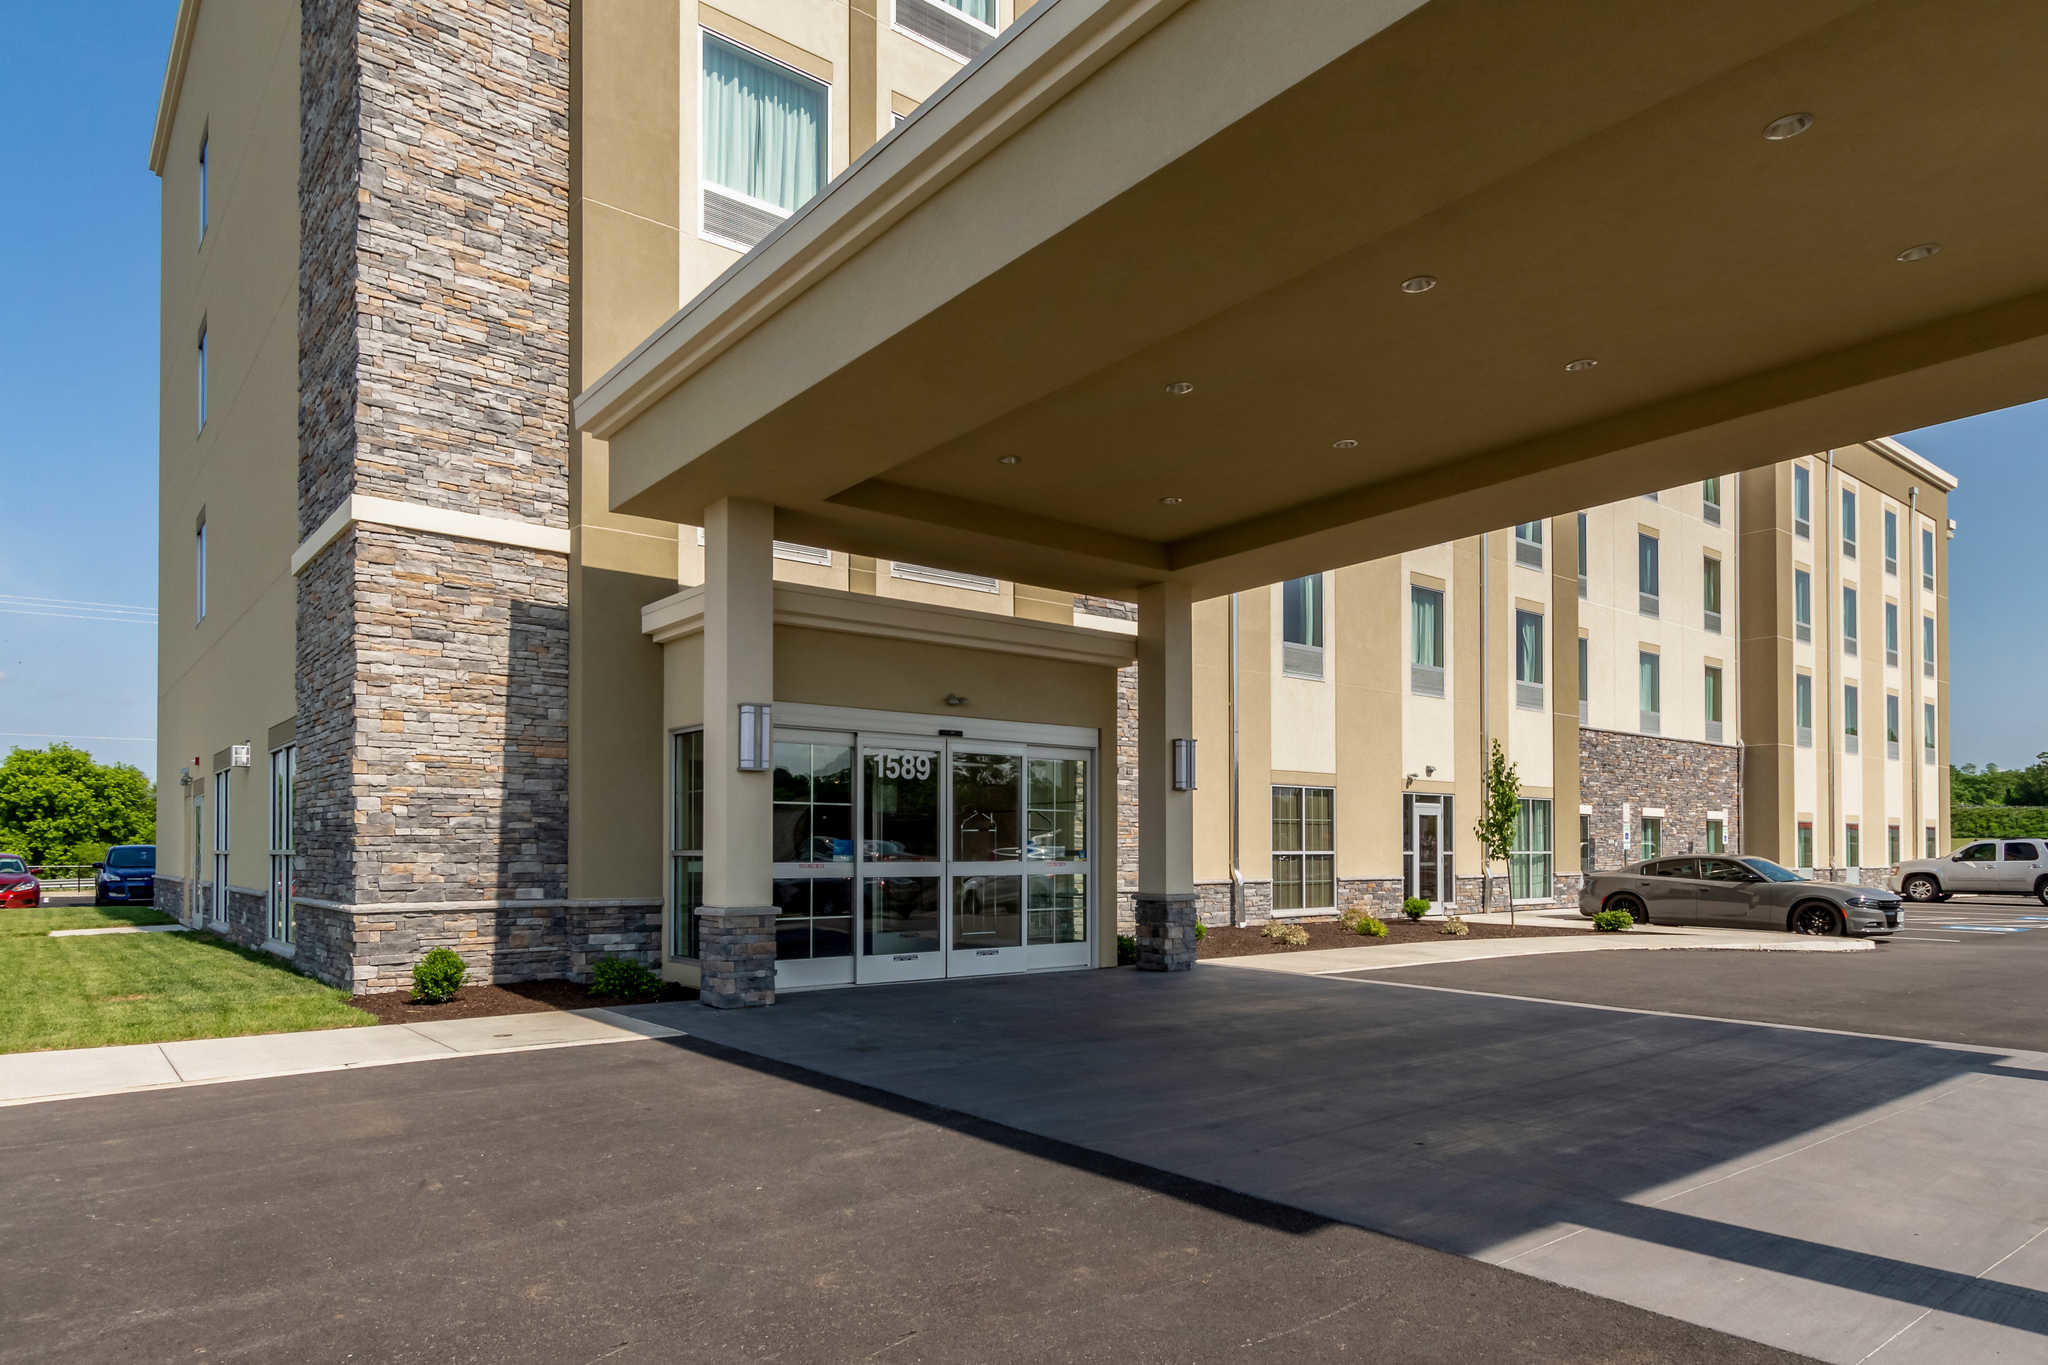 Comfort Inn & Suites - Harrisburg Airport - Hershey South image 3